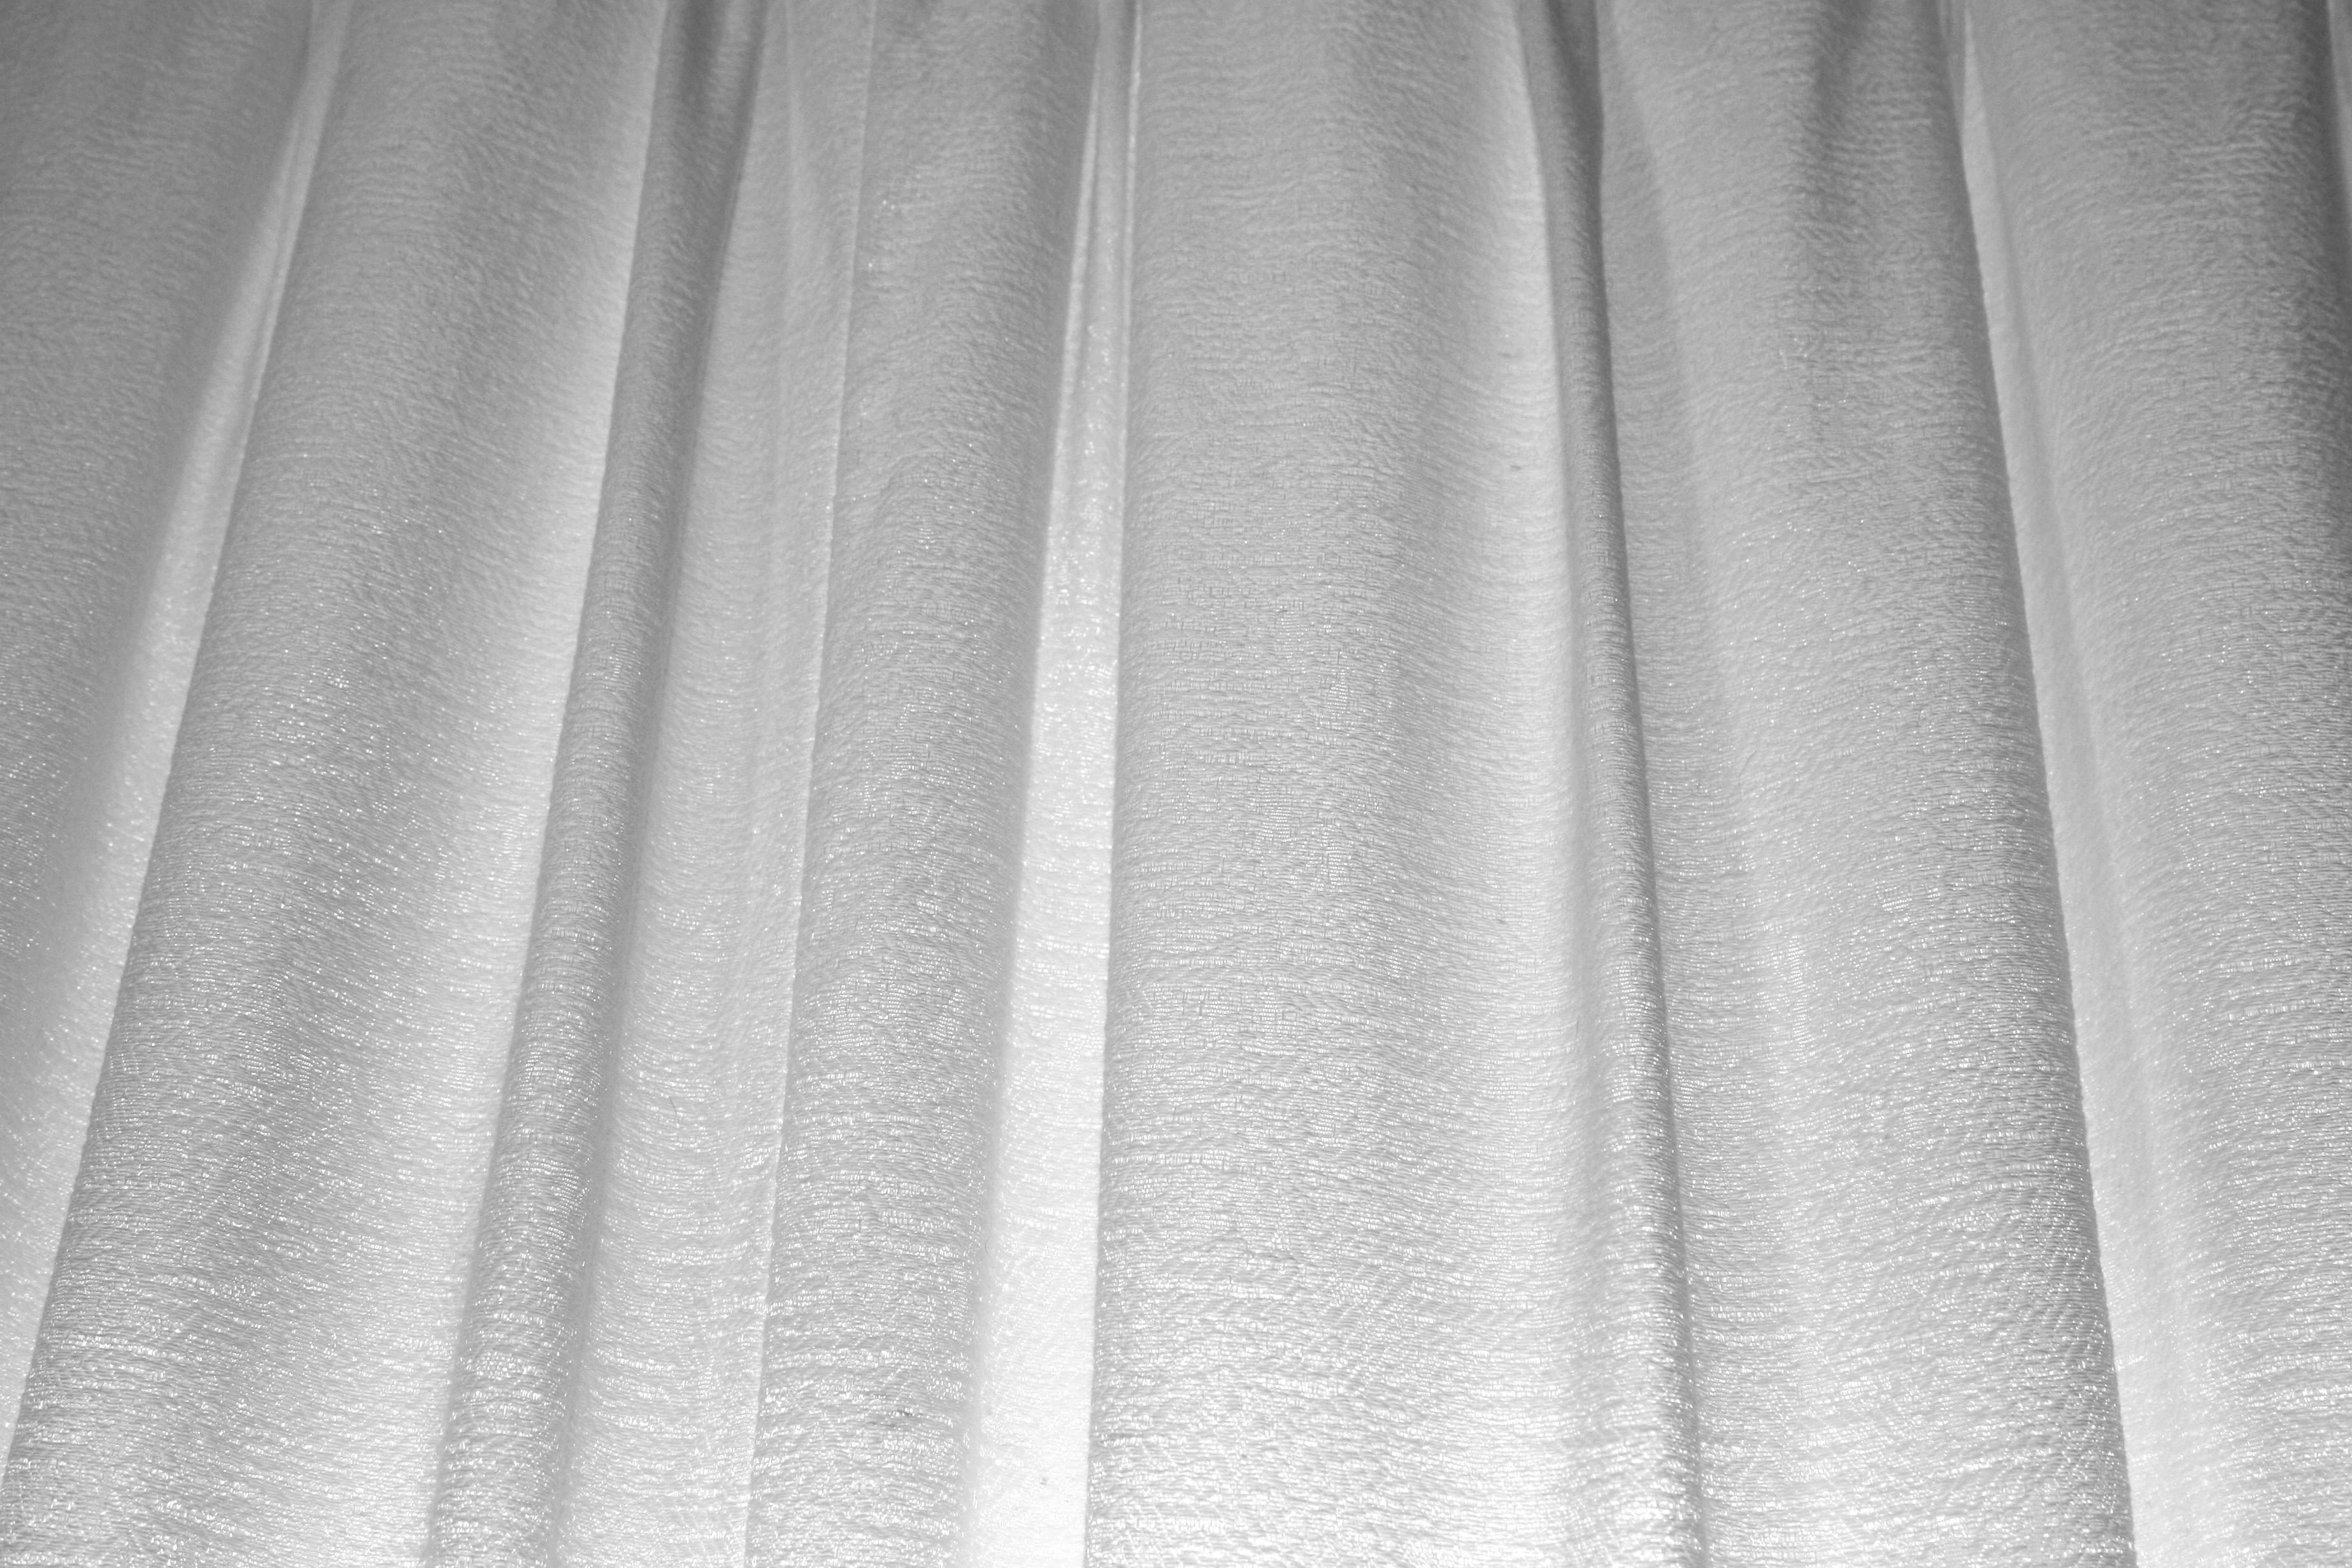 Free picture: white curtains, textil, texture for Black Curtains Texture  568zmd